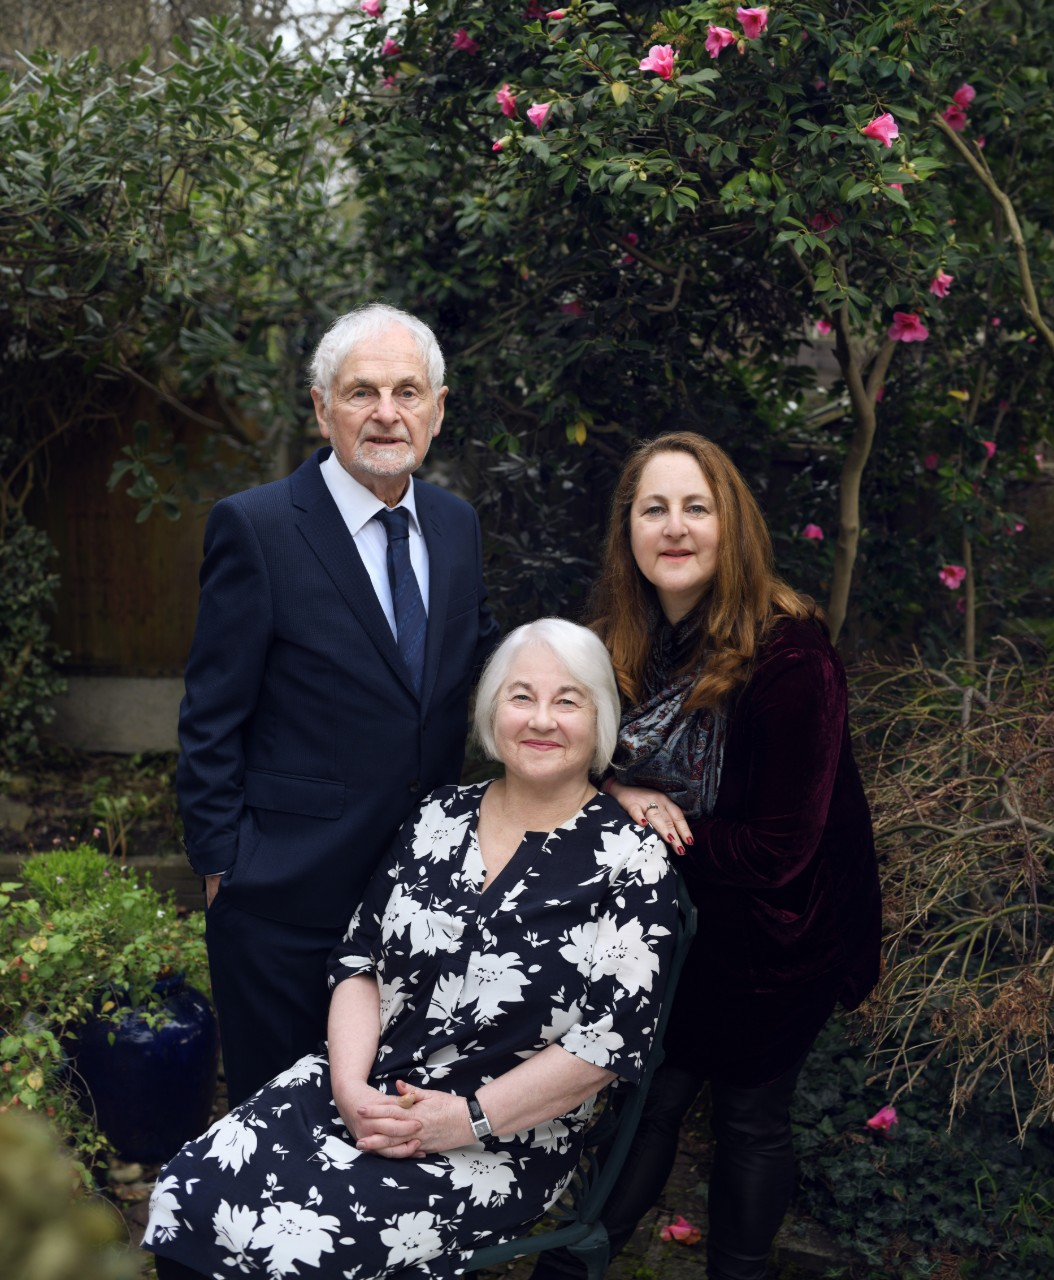 Joan Salter with her husband, Martin, and daughter, Shelley, © Frederic Aranda